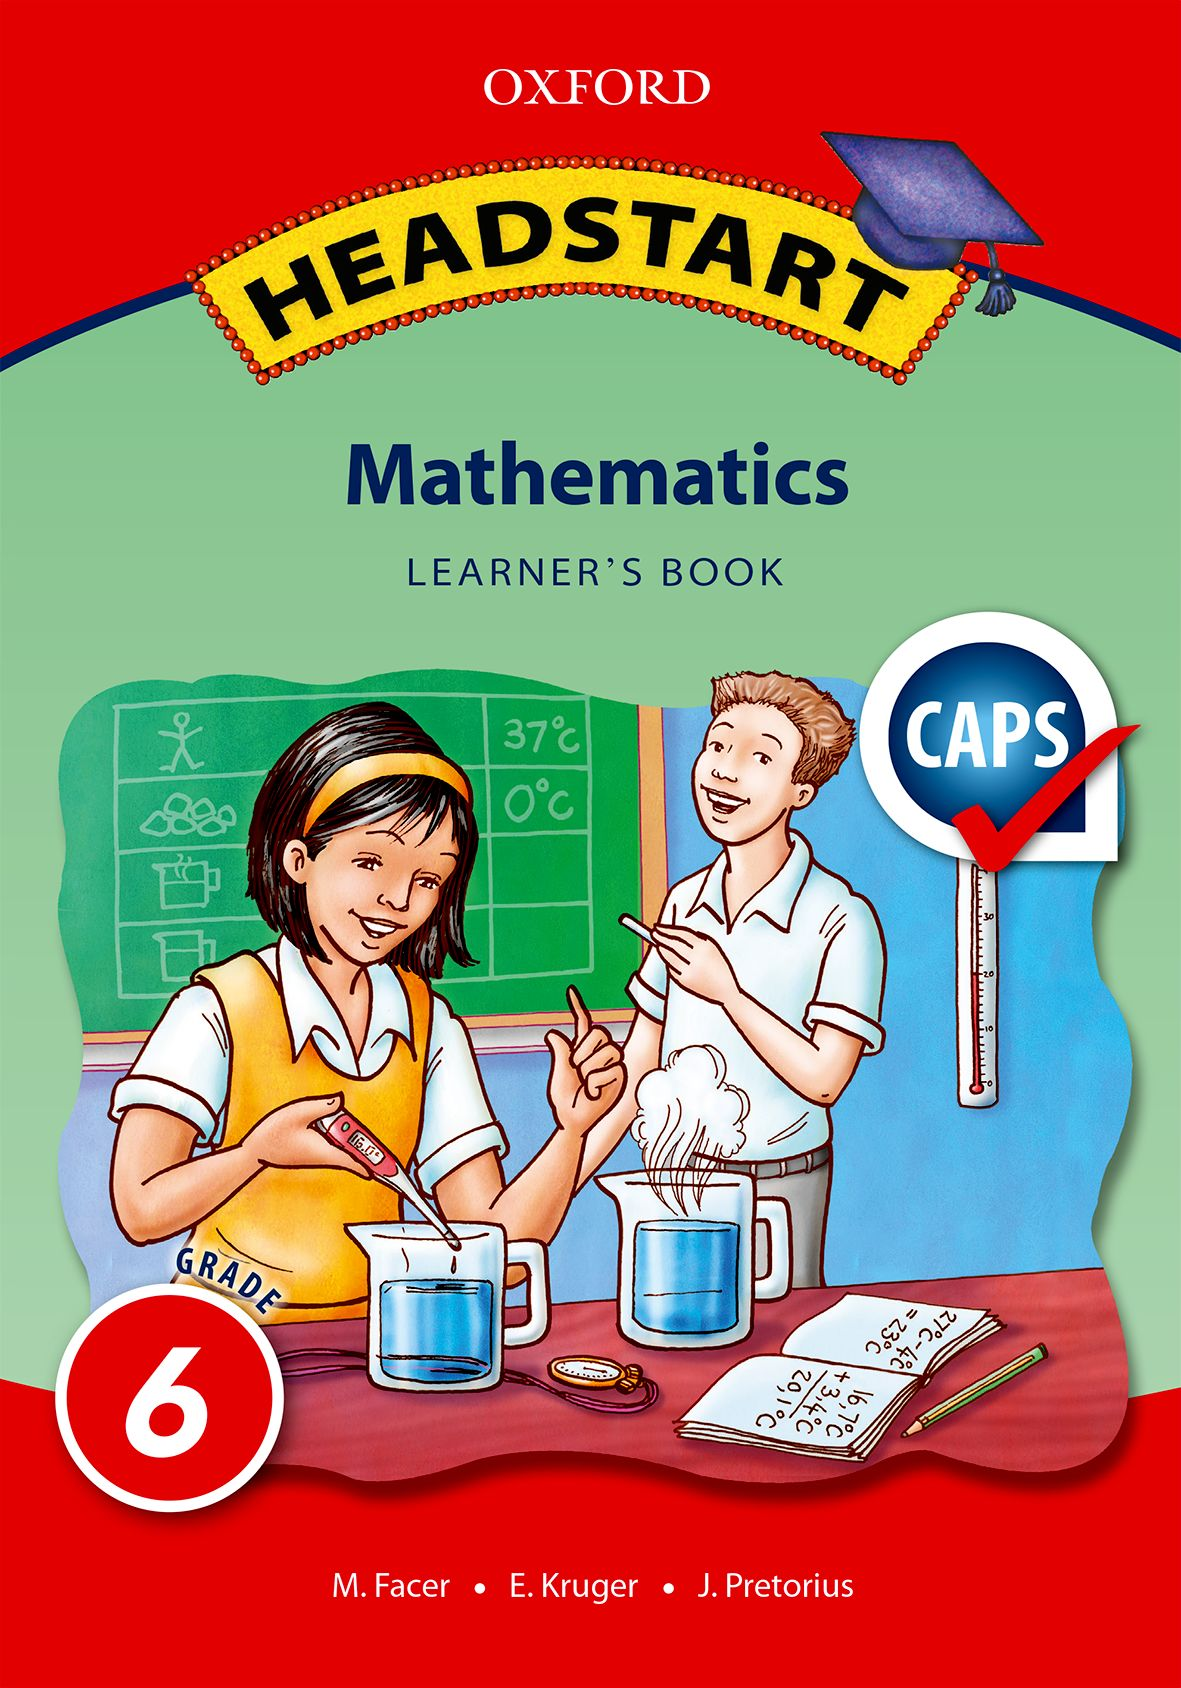 Oxford Headstart Mathematics Grade 6 LB (Approved)